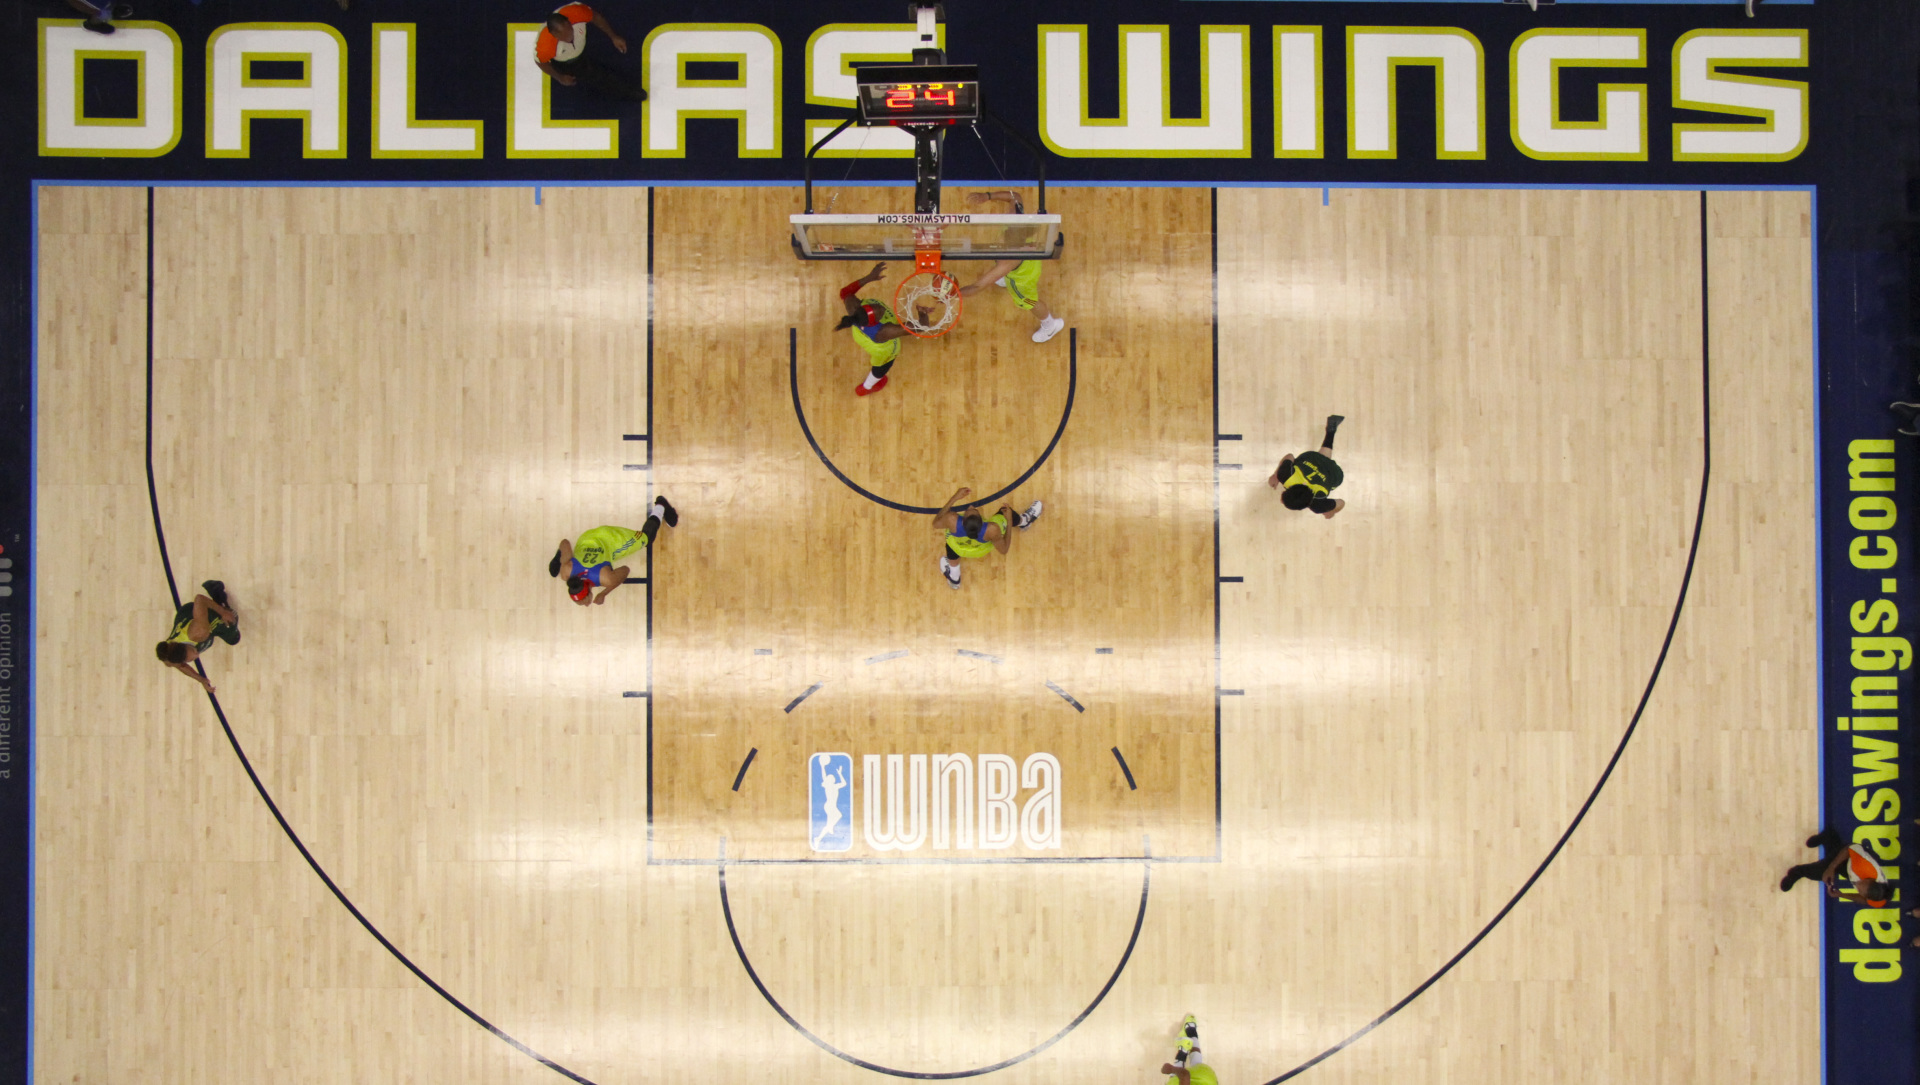 August 4, 2017 - Arlington, TX - The Dallas Wings play on defense in the game between the Dallas Wings and Seattle Storm. (Anthony Mazur/AM News Net)